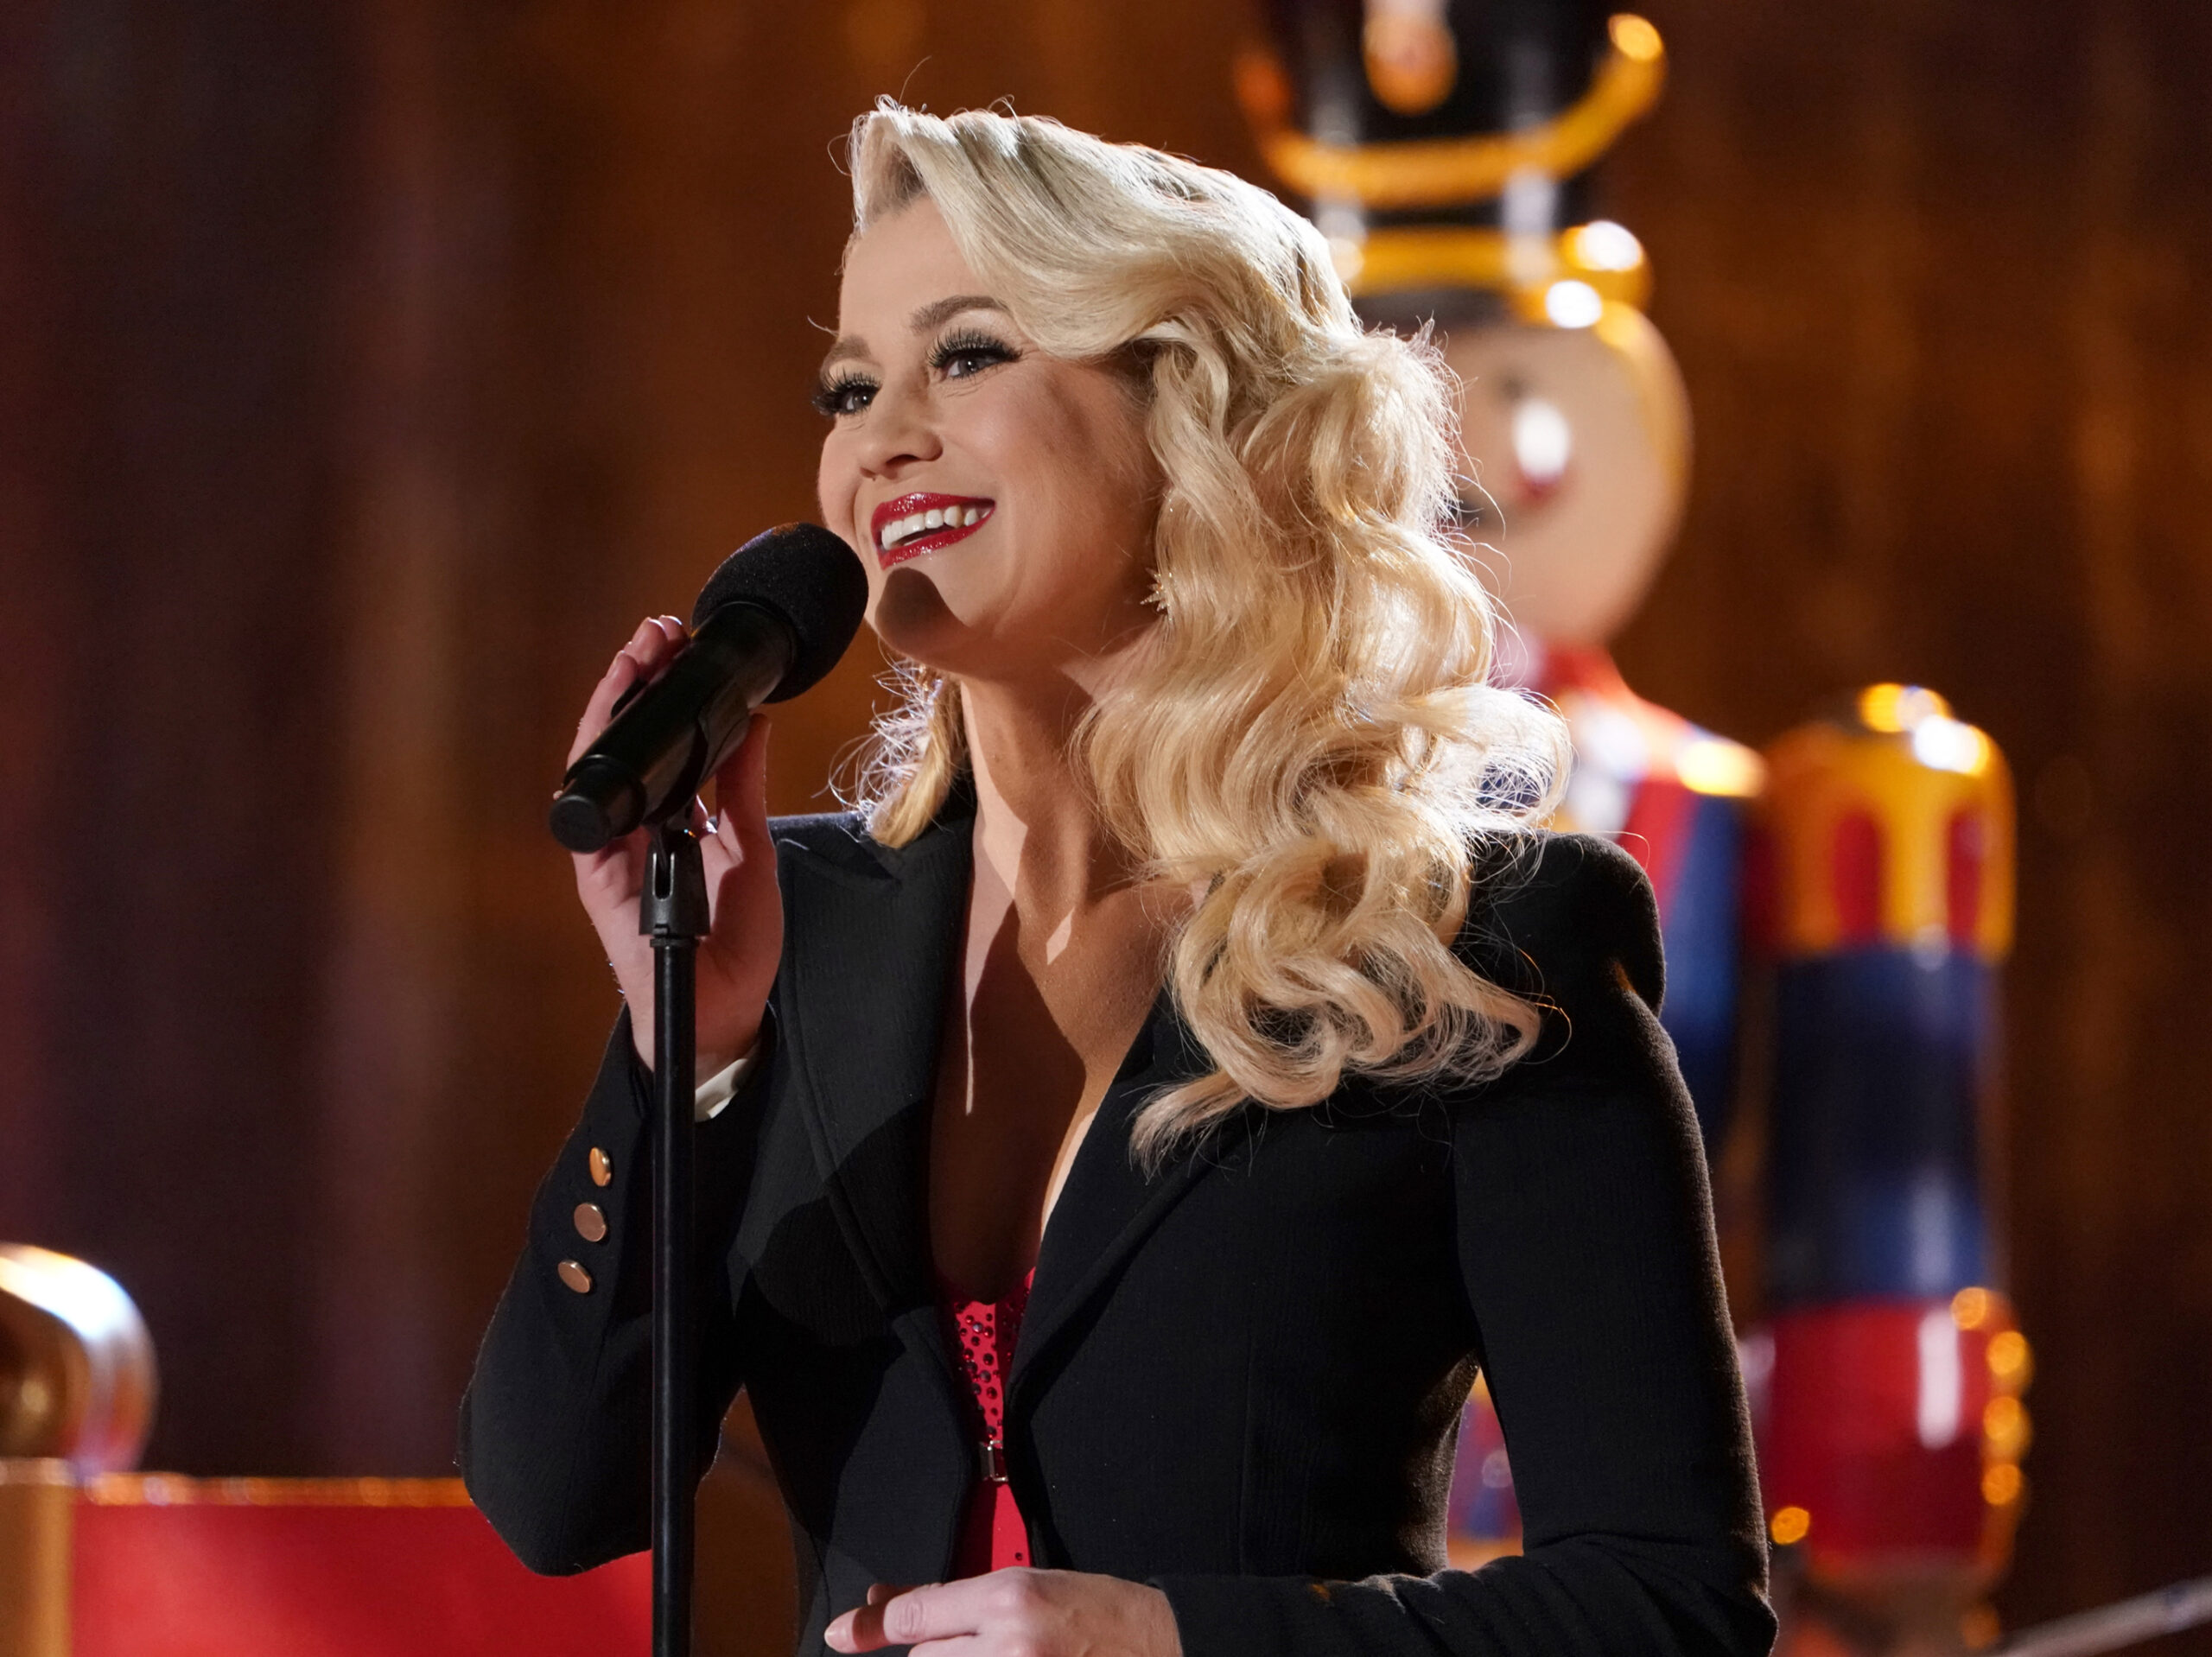 Kellie Pickler sings at a microphone. In the background, a large nutcracker can be seen.